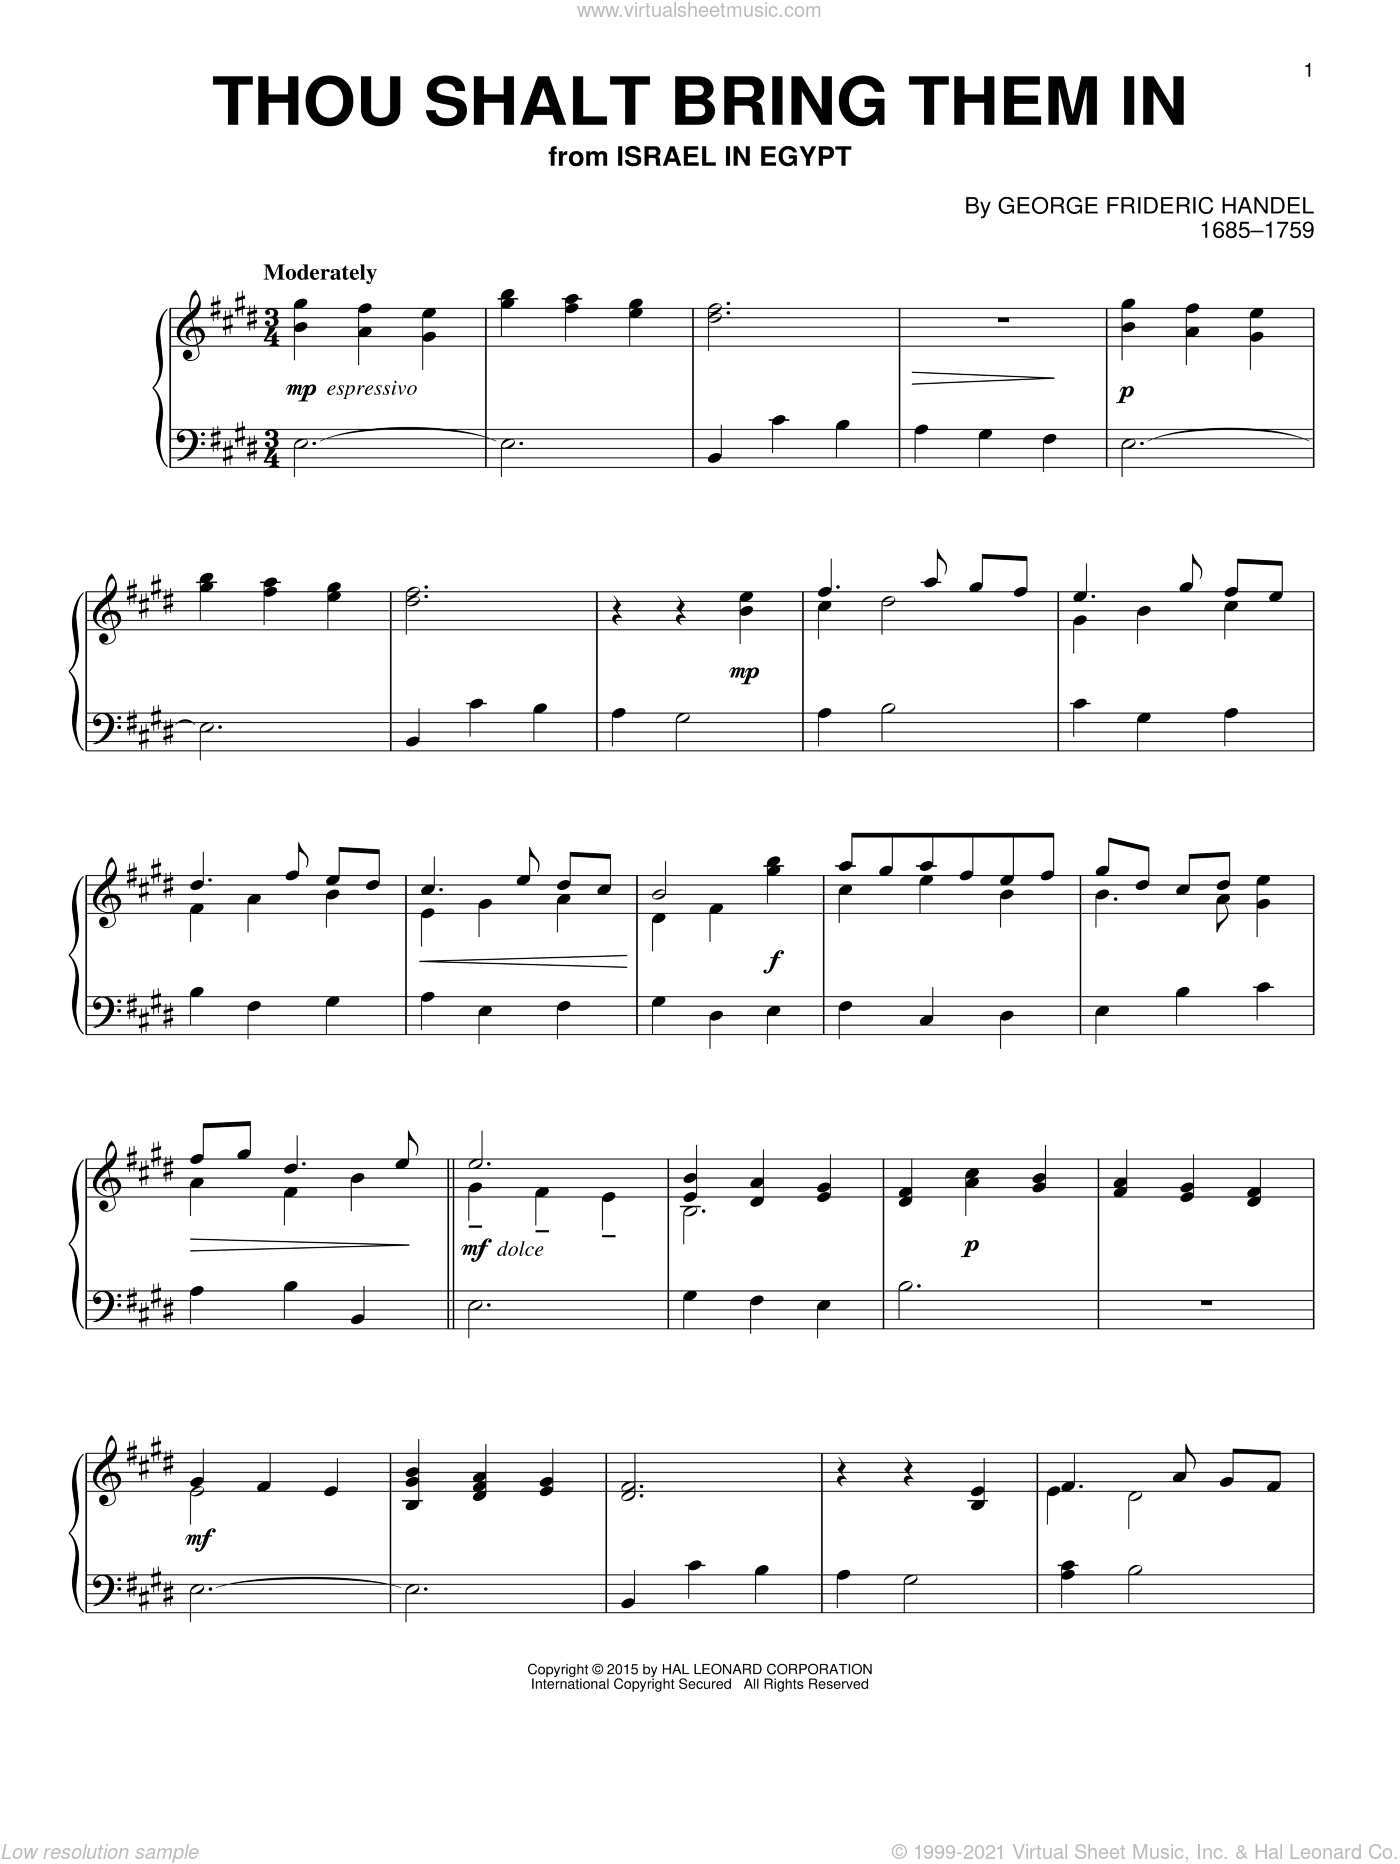 Thou Shalt Bring Them In sheet music for piano solo by George Frideric Handel, classical score, intermediate